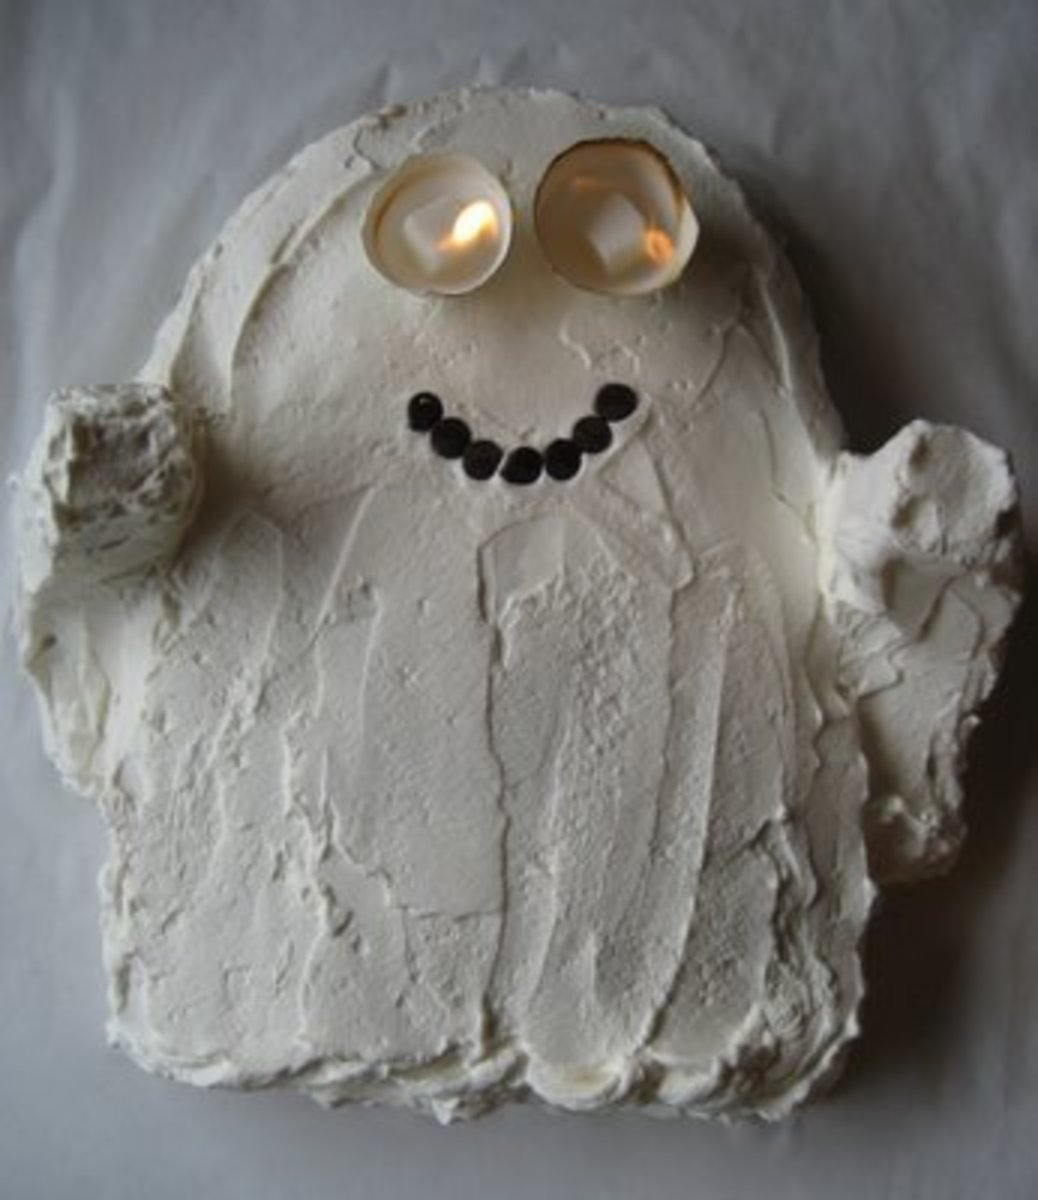 How to Make a Halloween Ghost Cake With Flaming Eyes